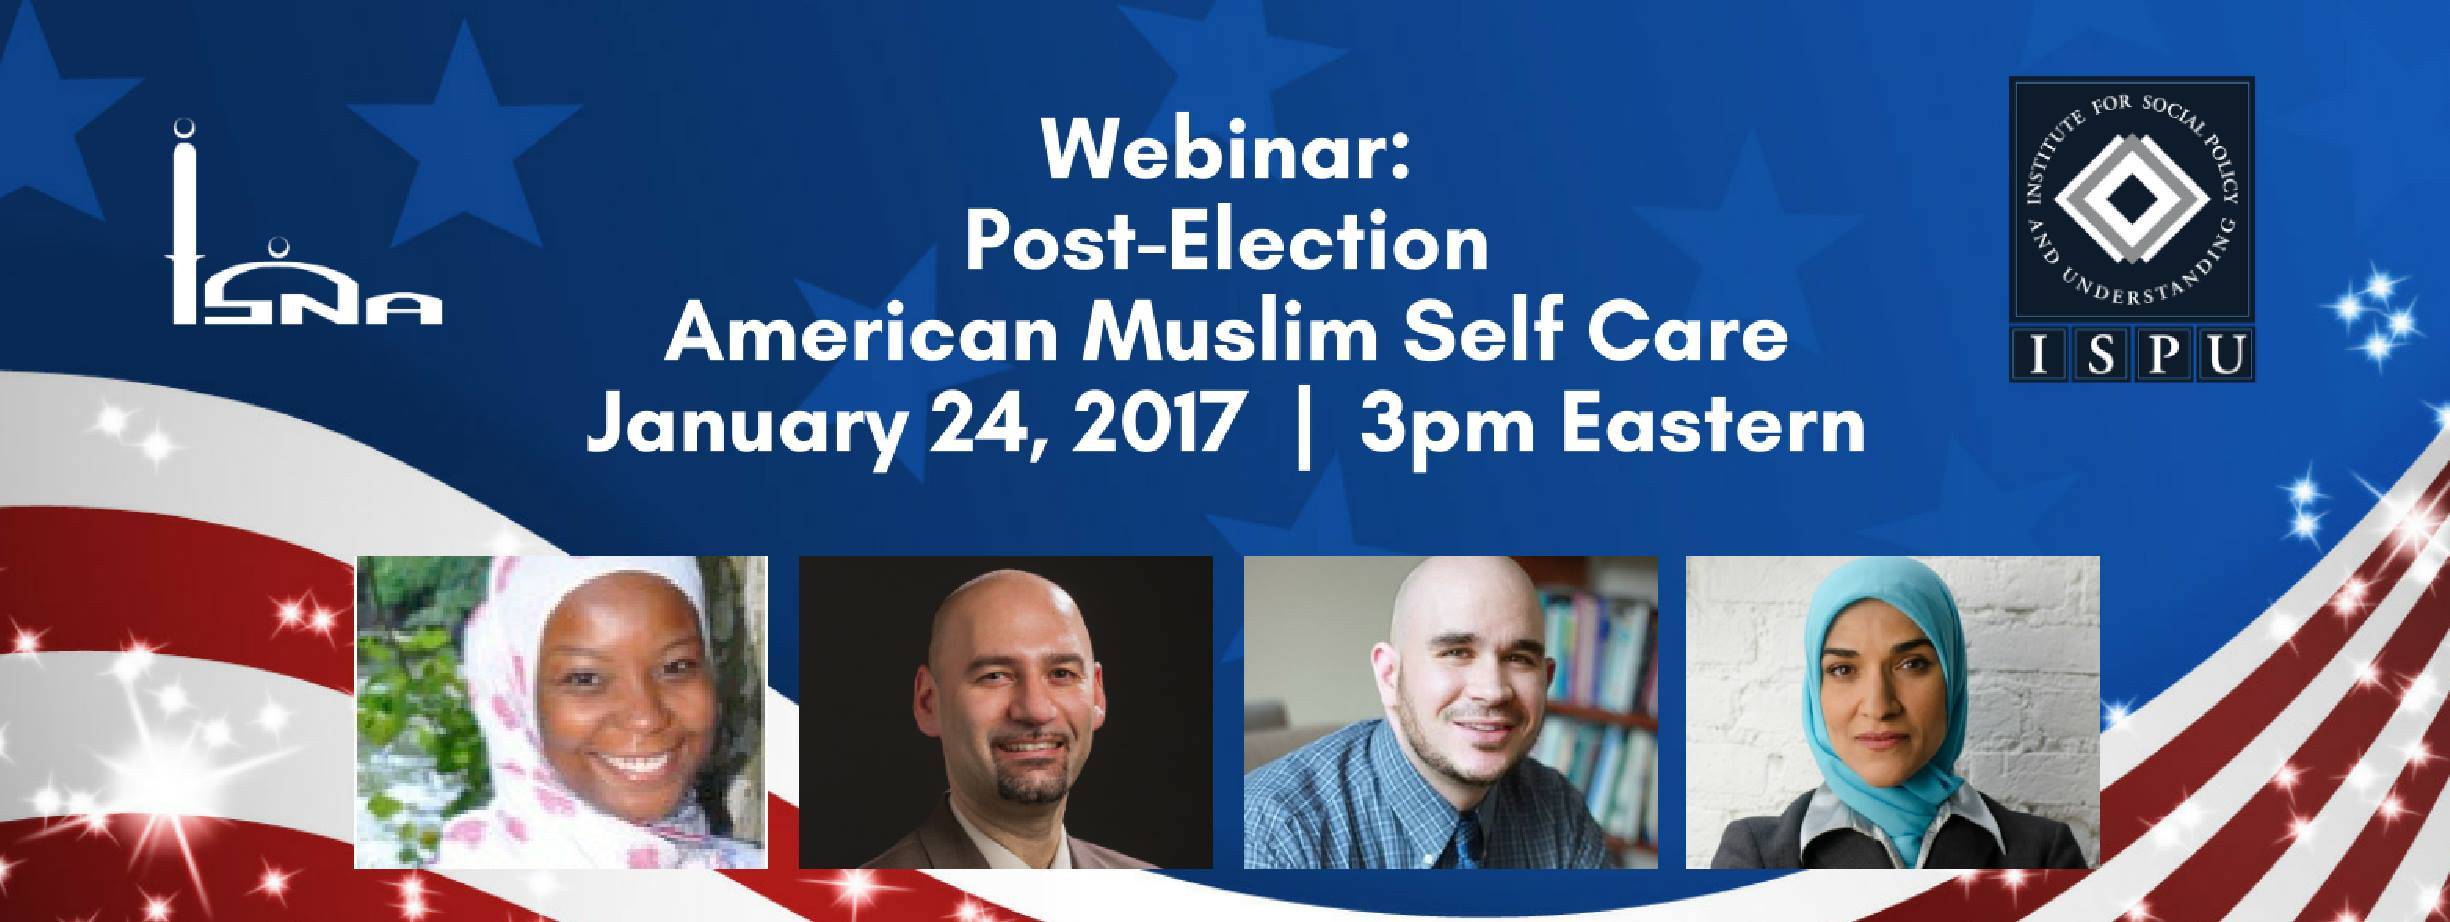 Webinar: Post-Election American Muslim Self Care